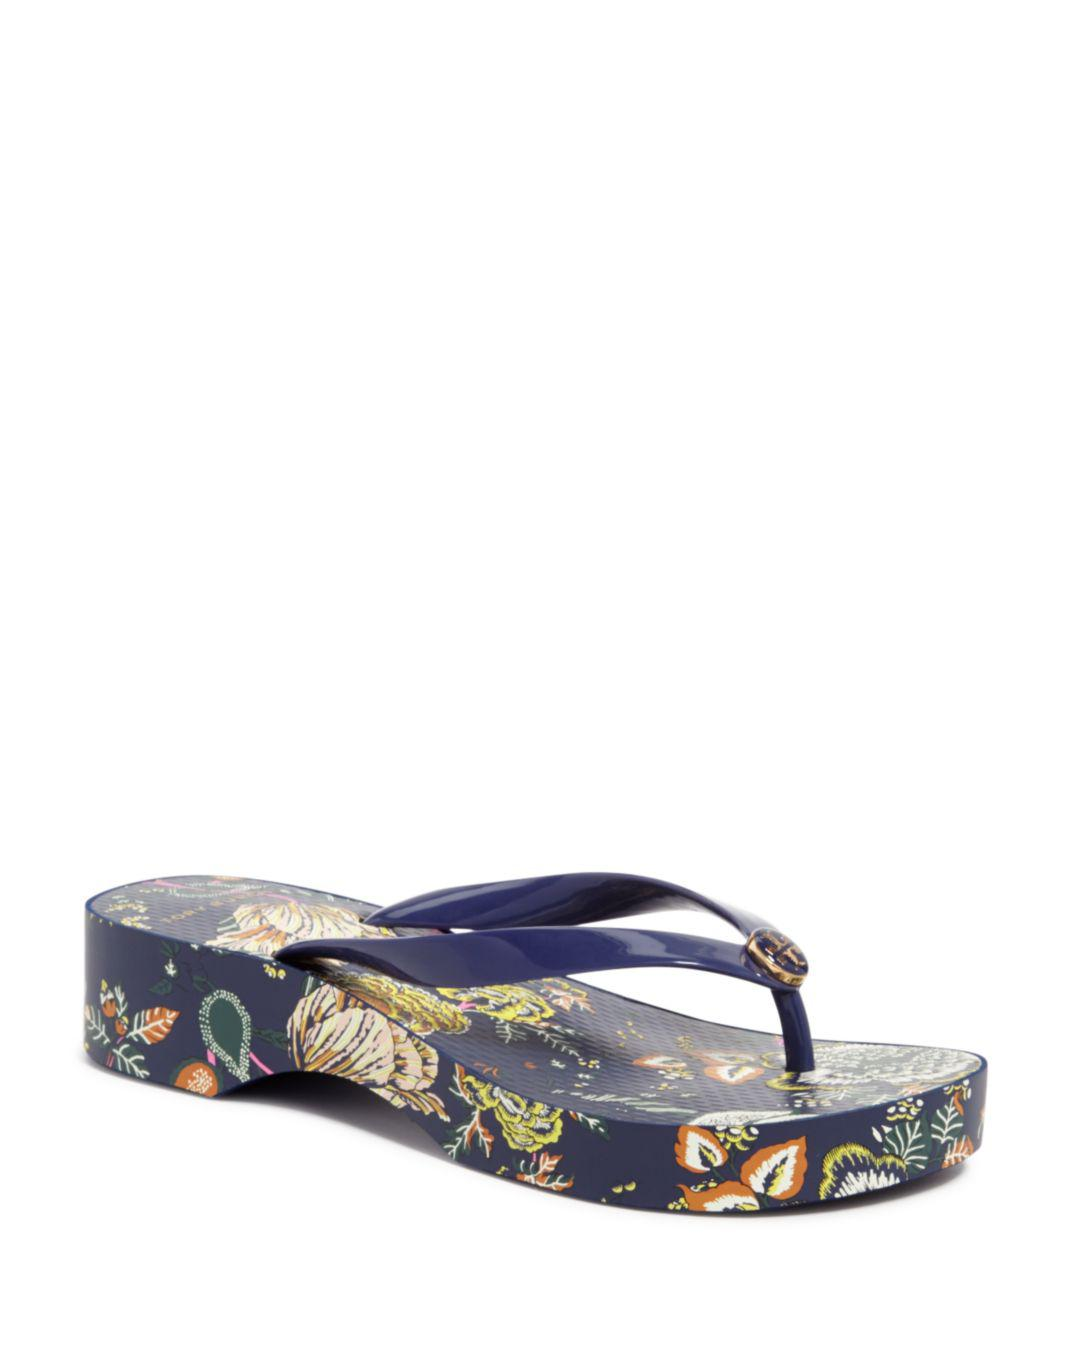 91d745f88 Lyst - Tory Burch Women s Printed Platform Flip-flops in Blue